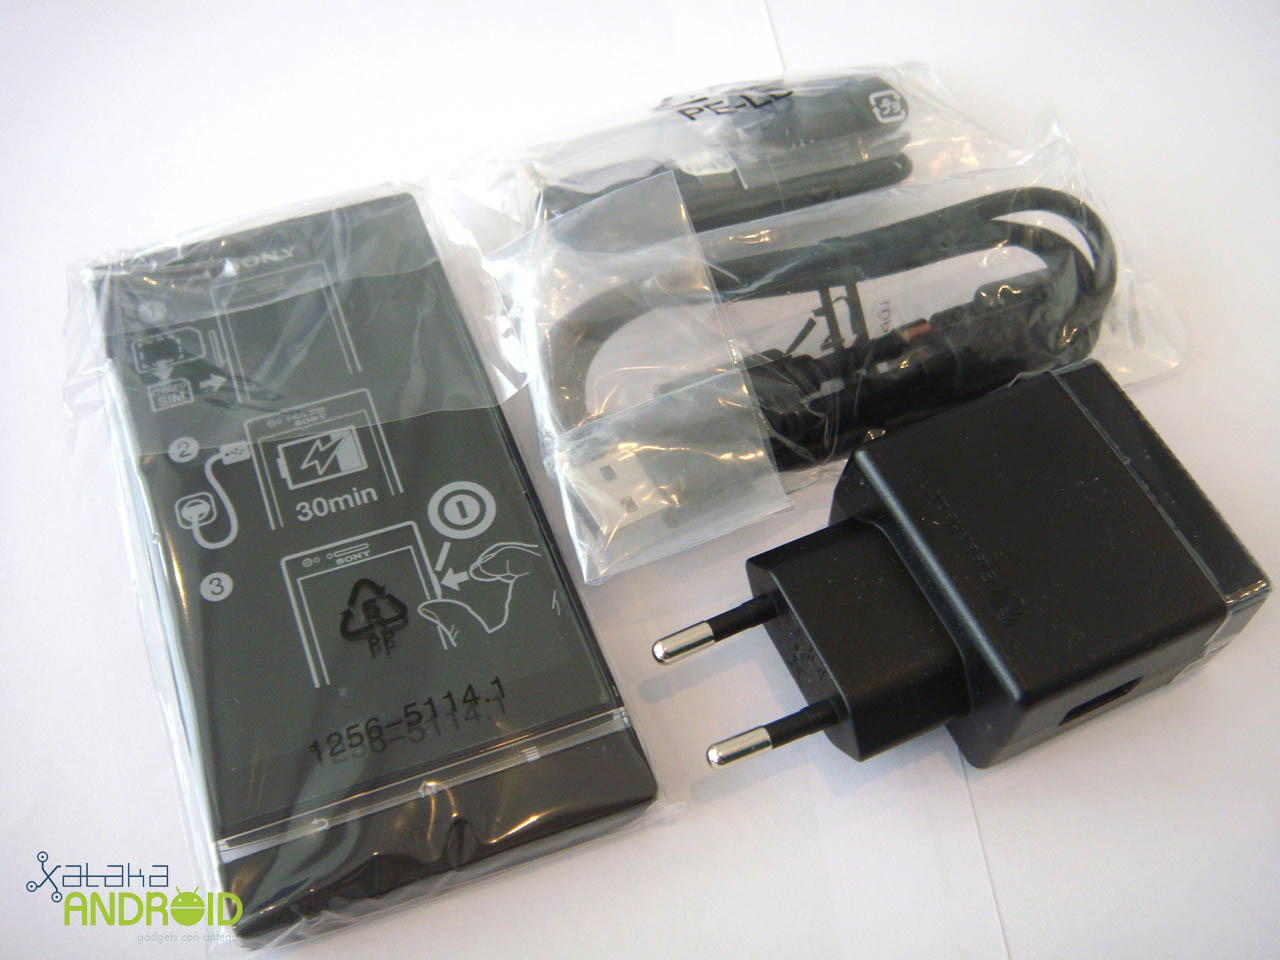 Unboxing Sony Xperia P